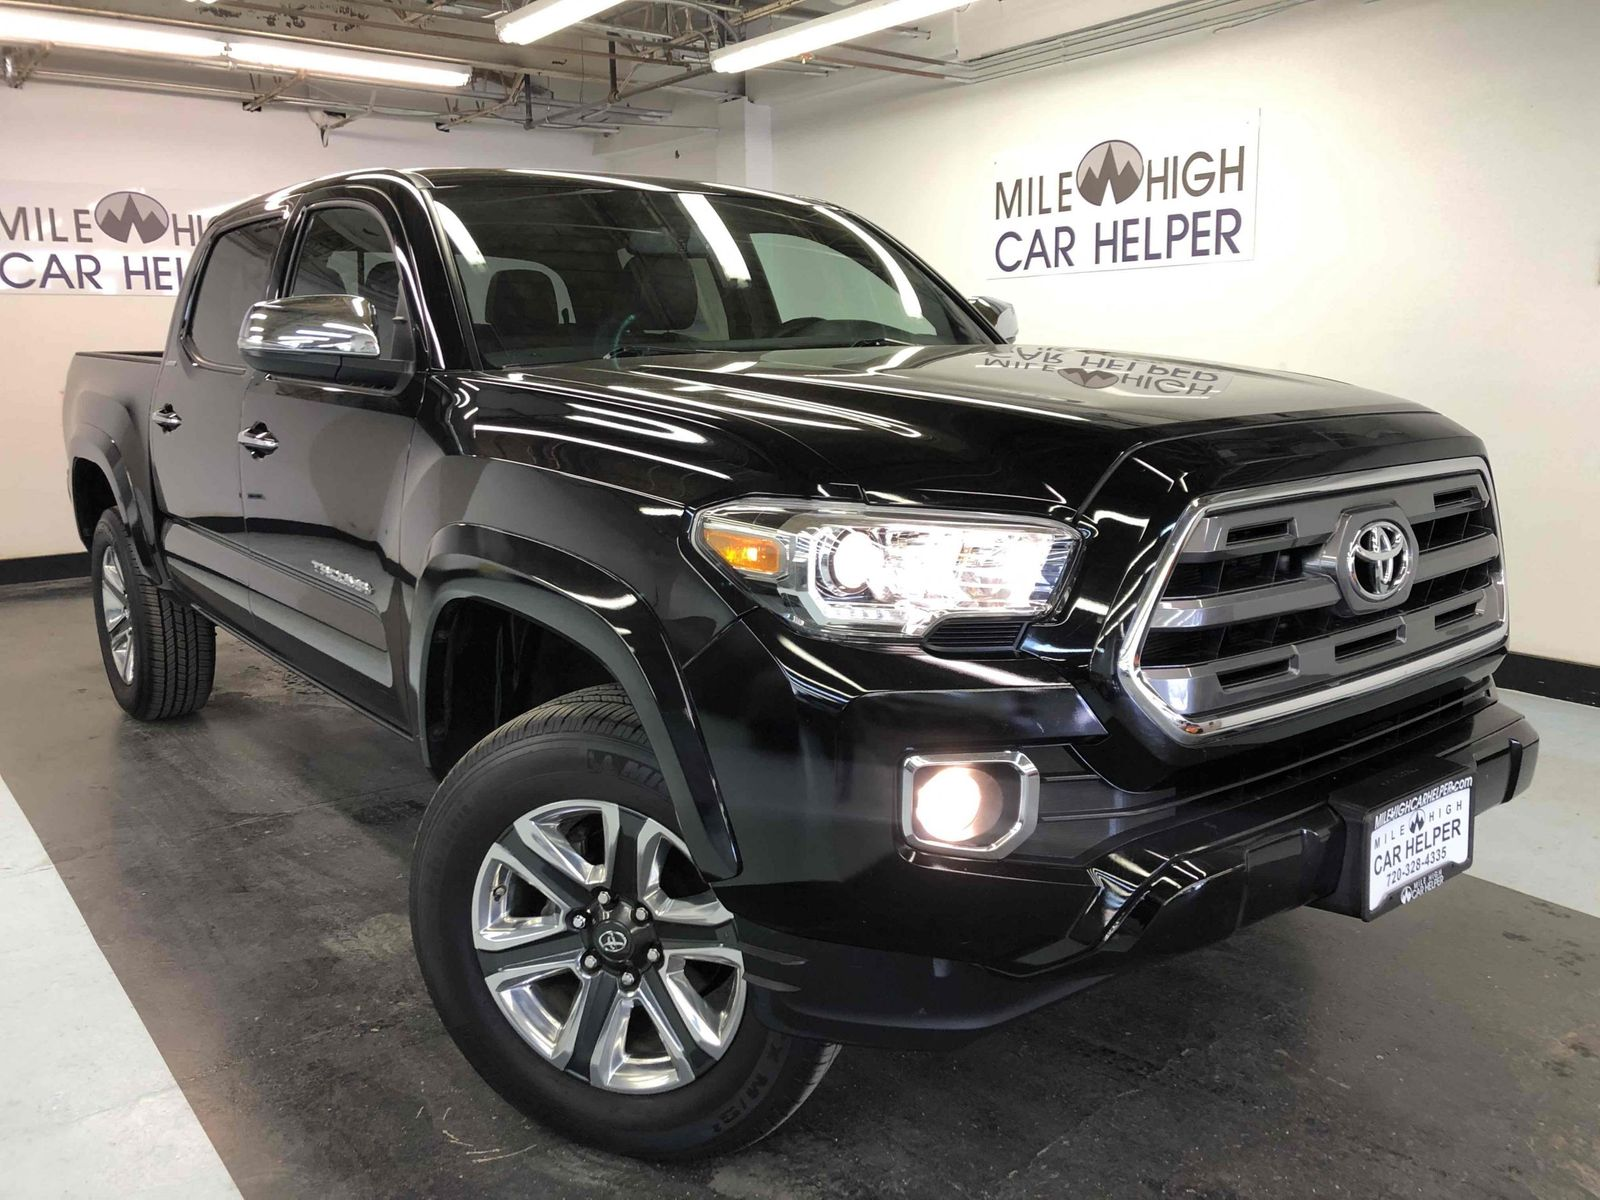 2017 Toyota Tacoma Limited Mile High Car Helper